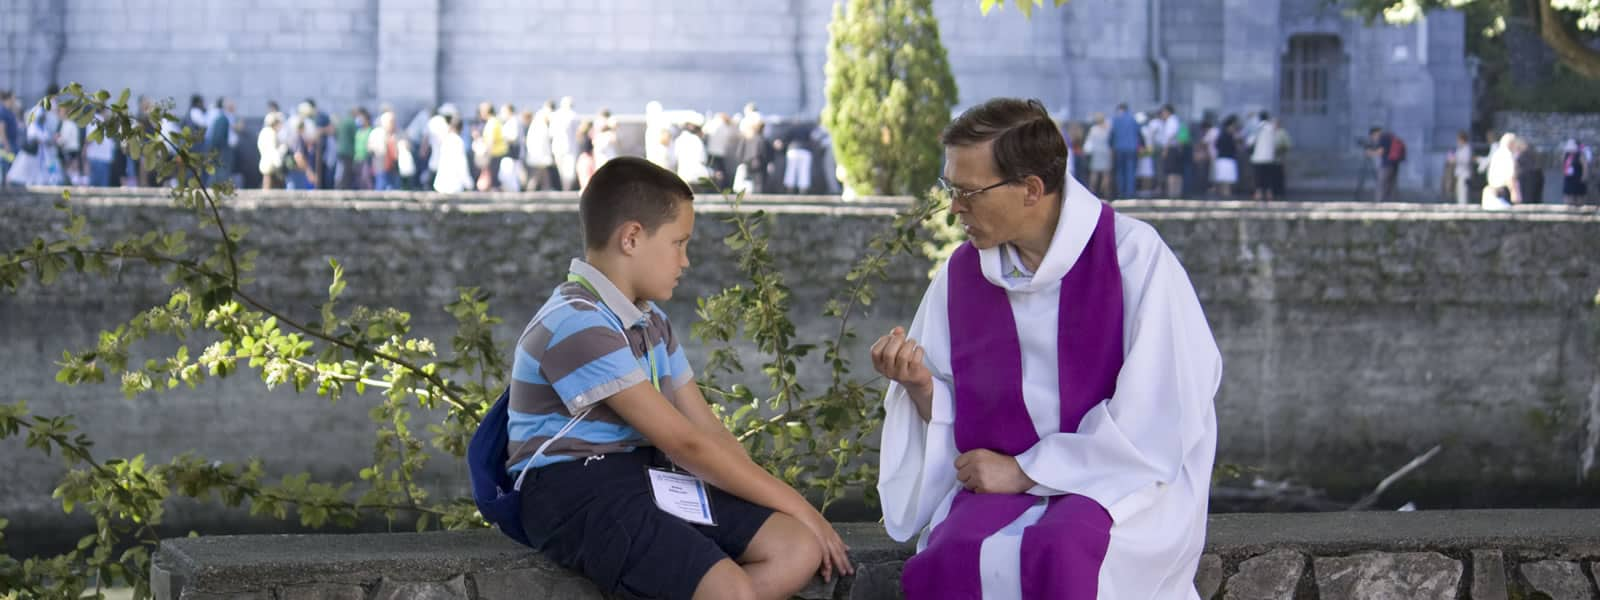 Child Goes to Confession Sitting with Priest